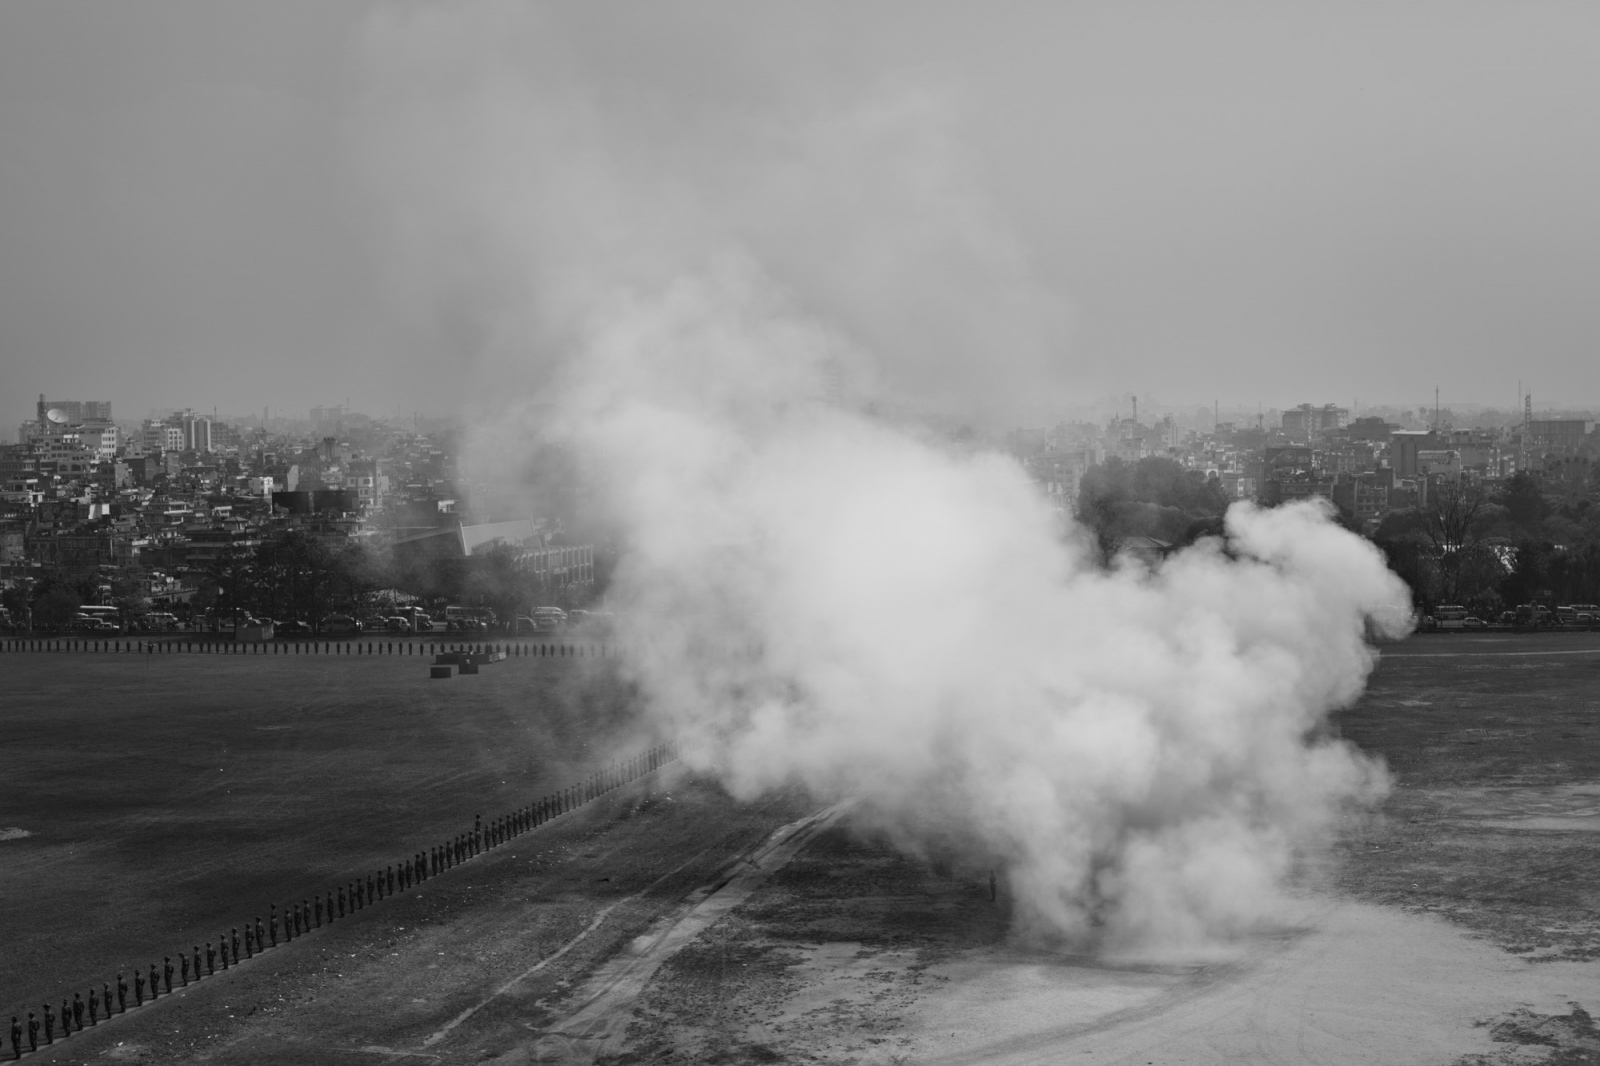 Smoke rises from canon fire during a military demonstration.